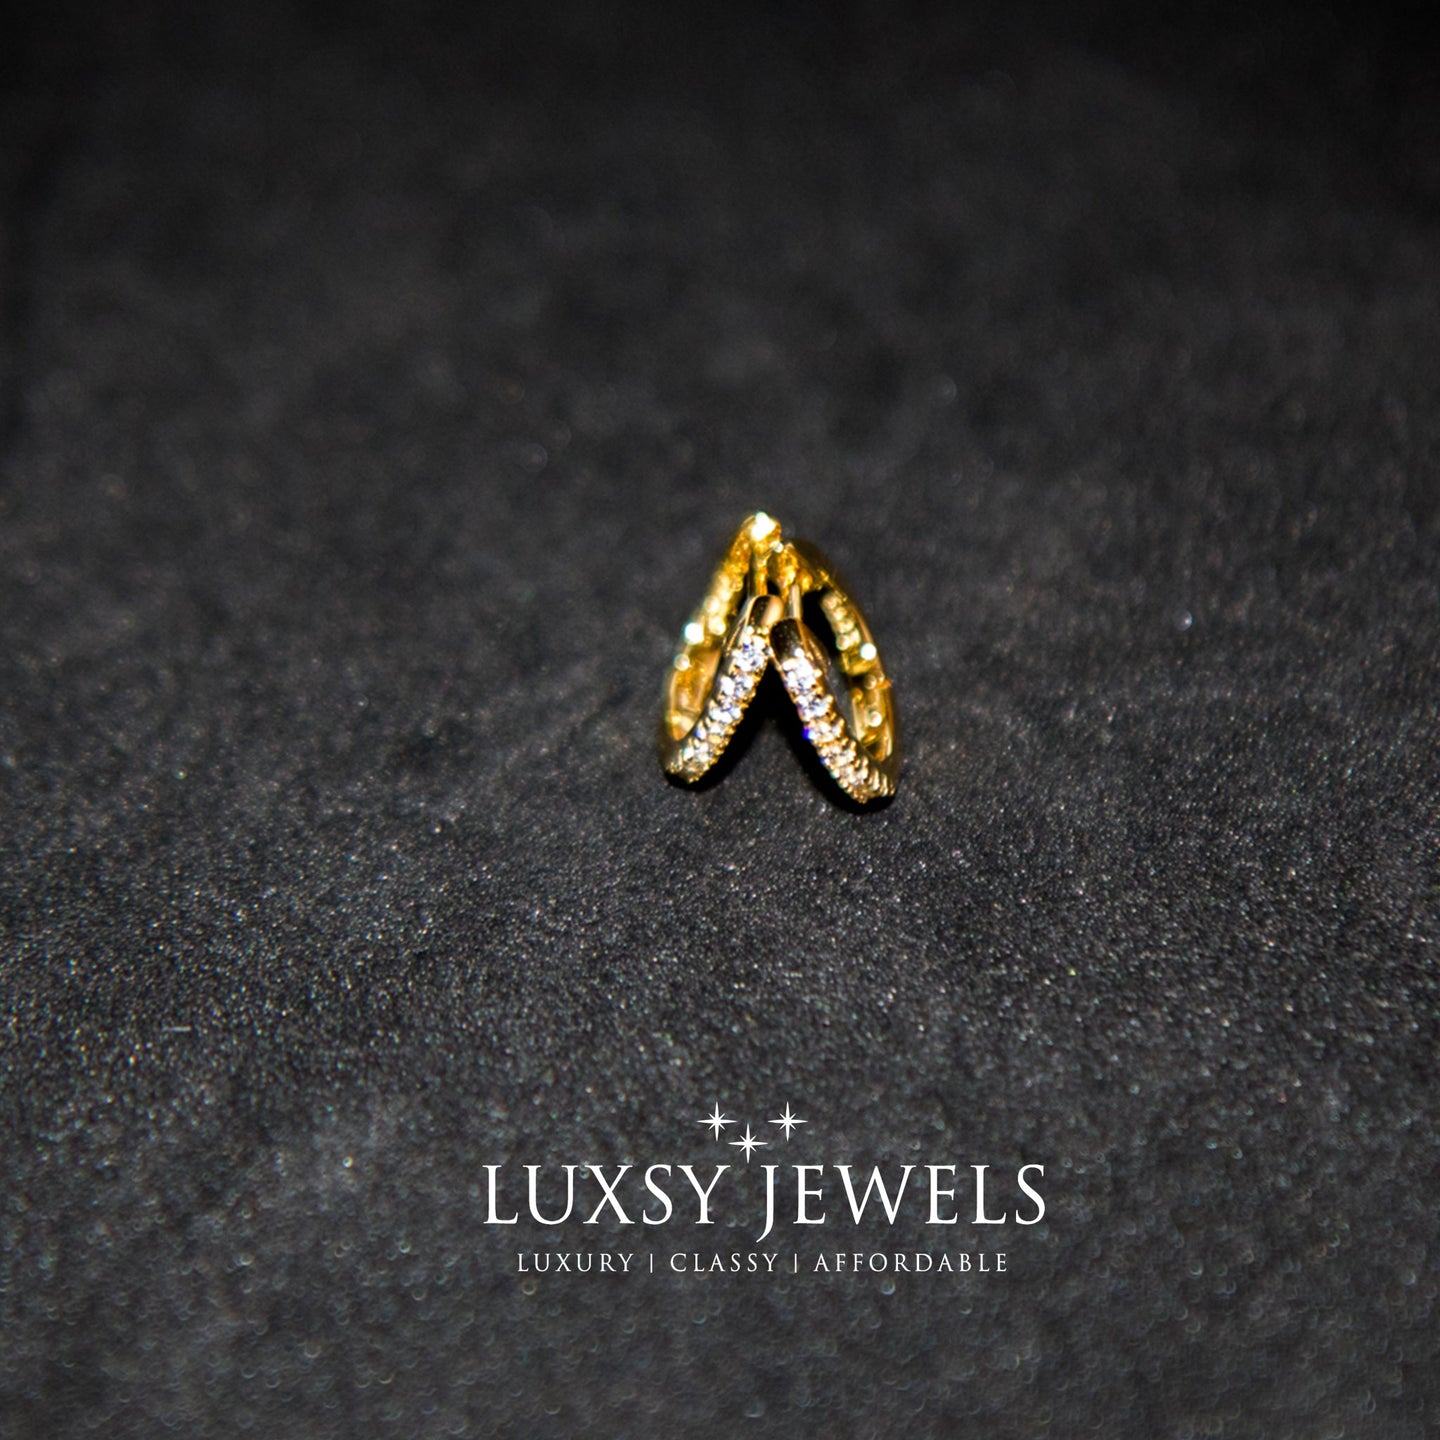 Luxsy Petra Earrings - 925 Silver - Luxsy Jewels